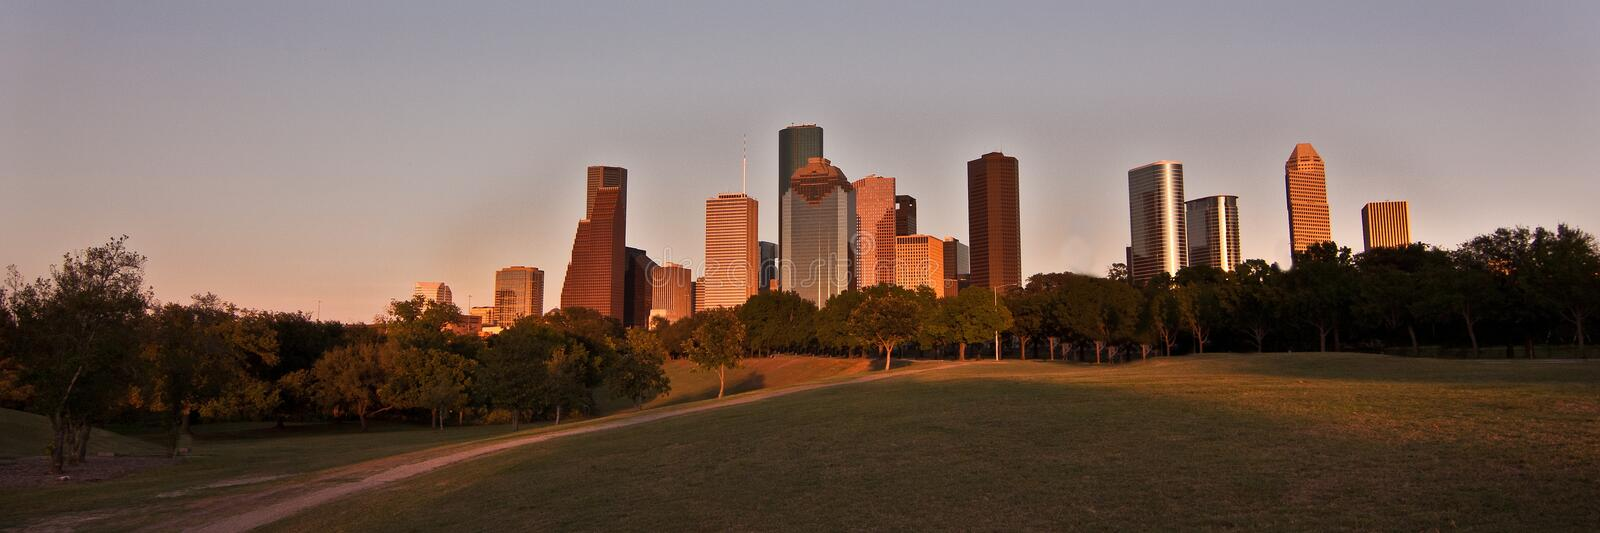 Horizon de Houston, le Texas au coucher du soleil photographie stock libre de droits